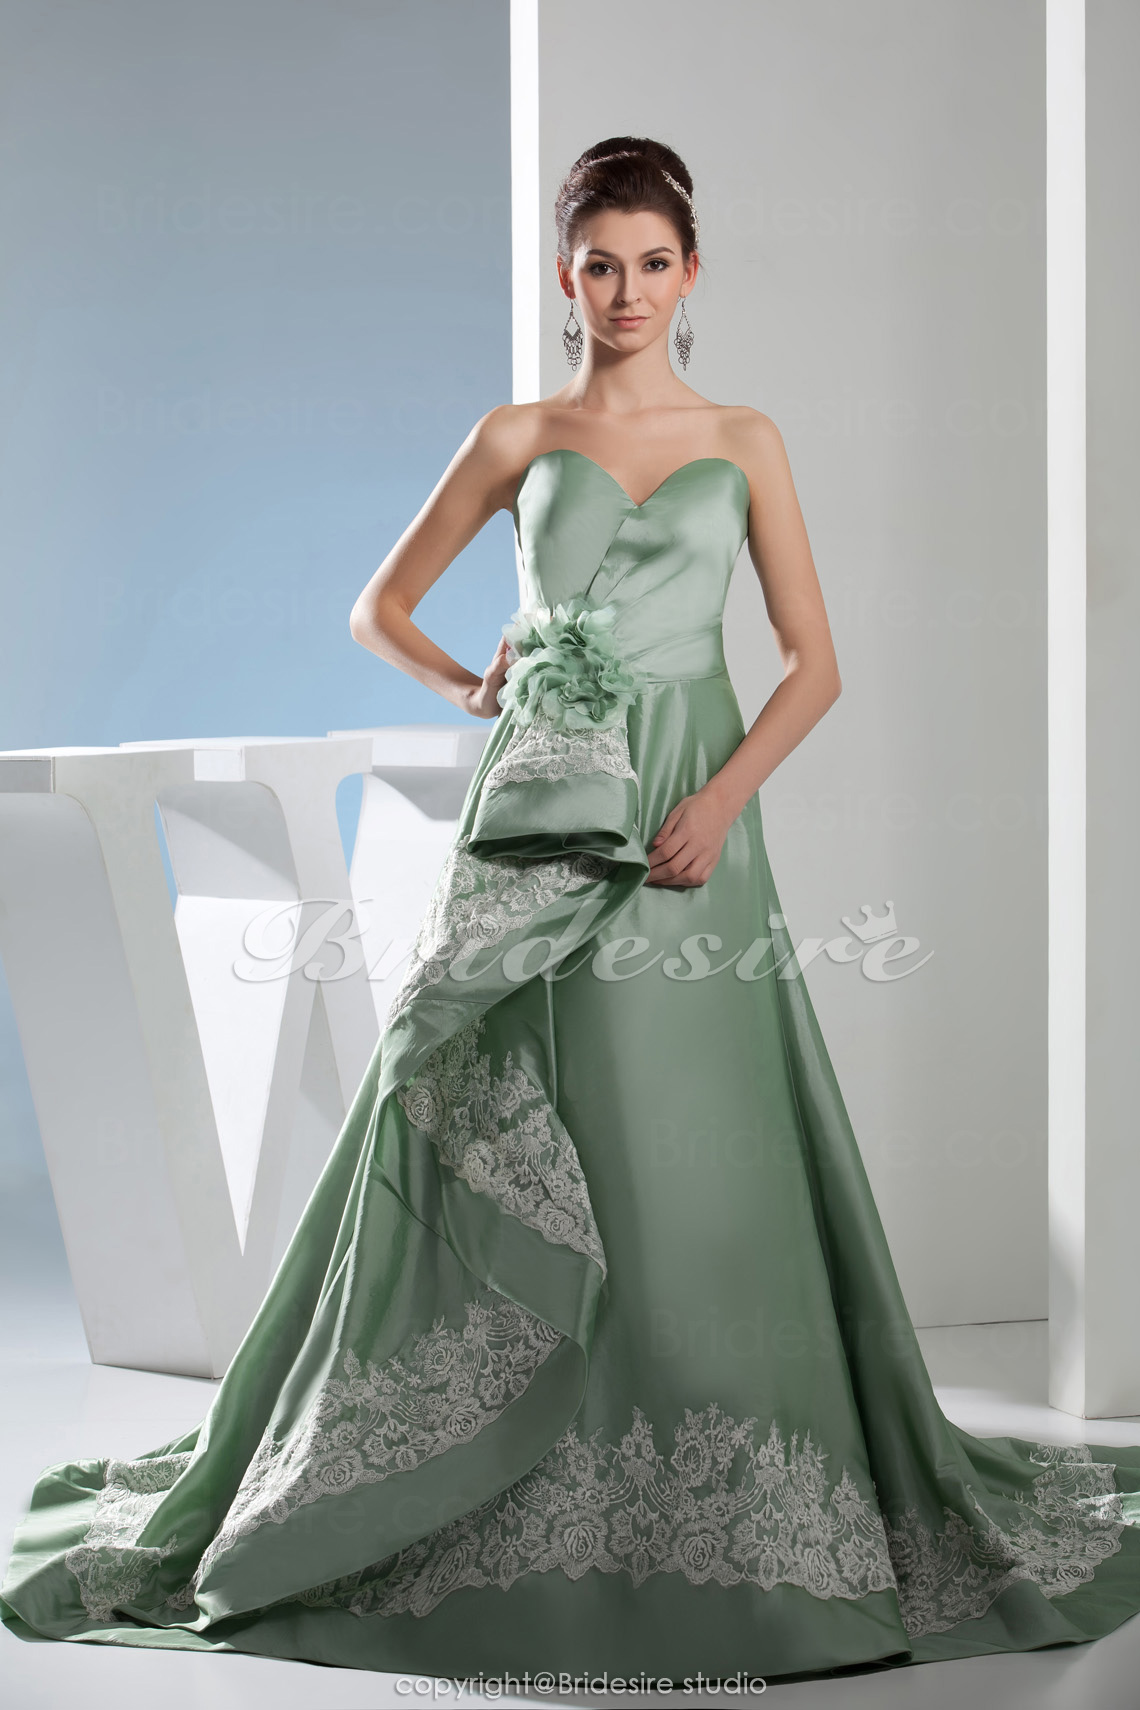 A-line Sweetheart Court Train Sleeveless Satin Dress